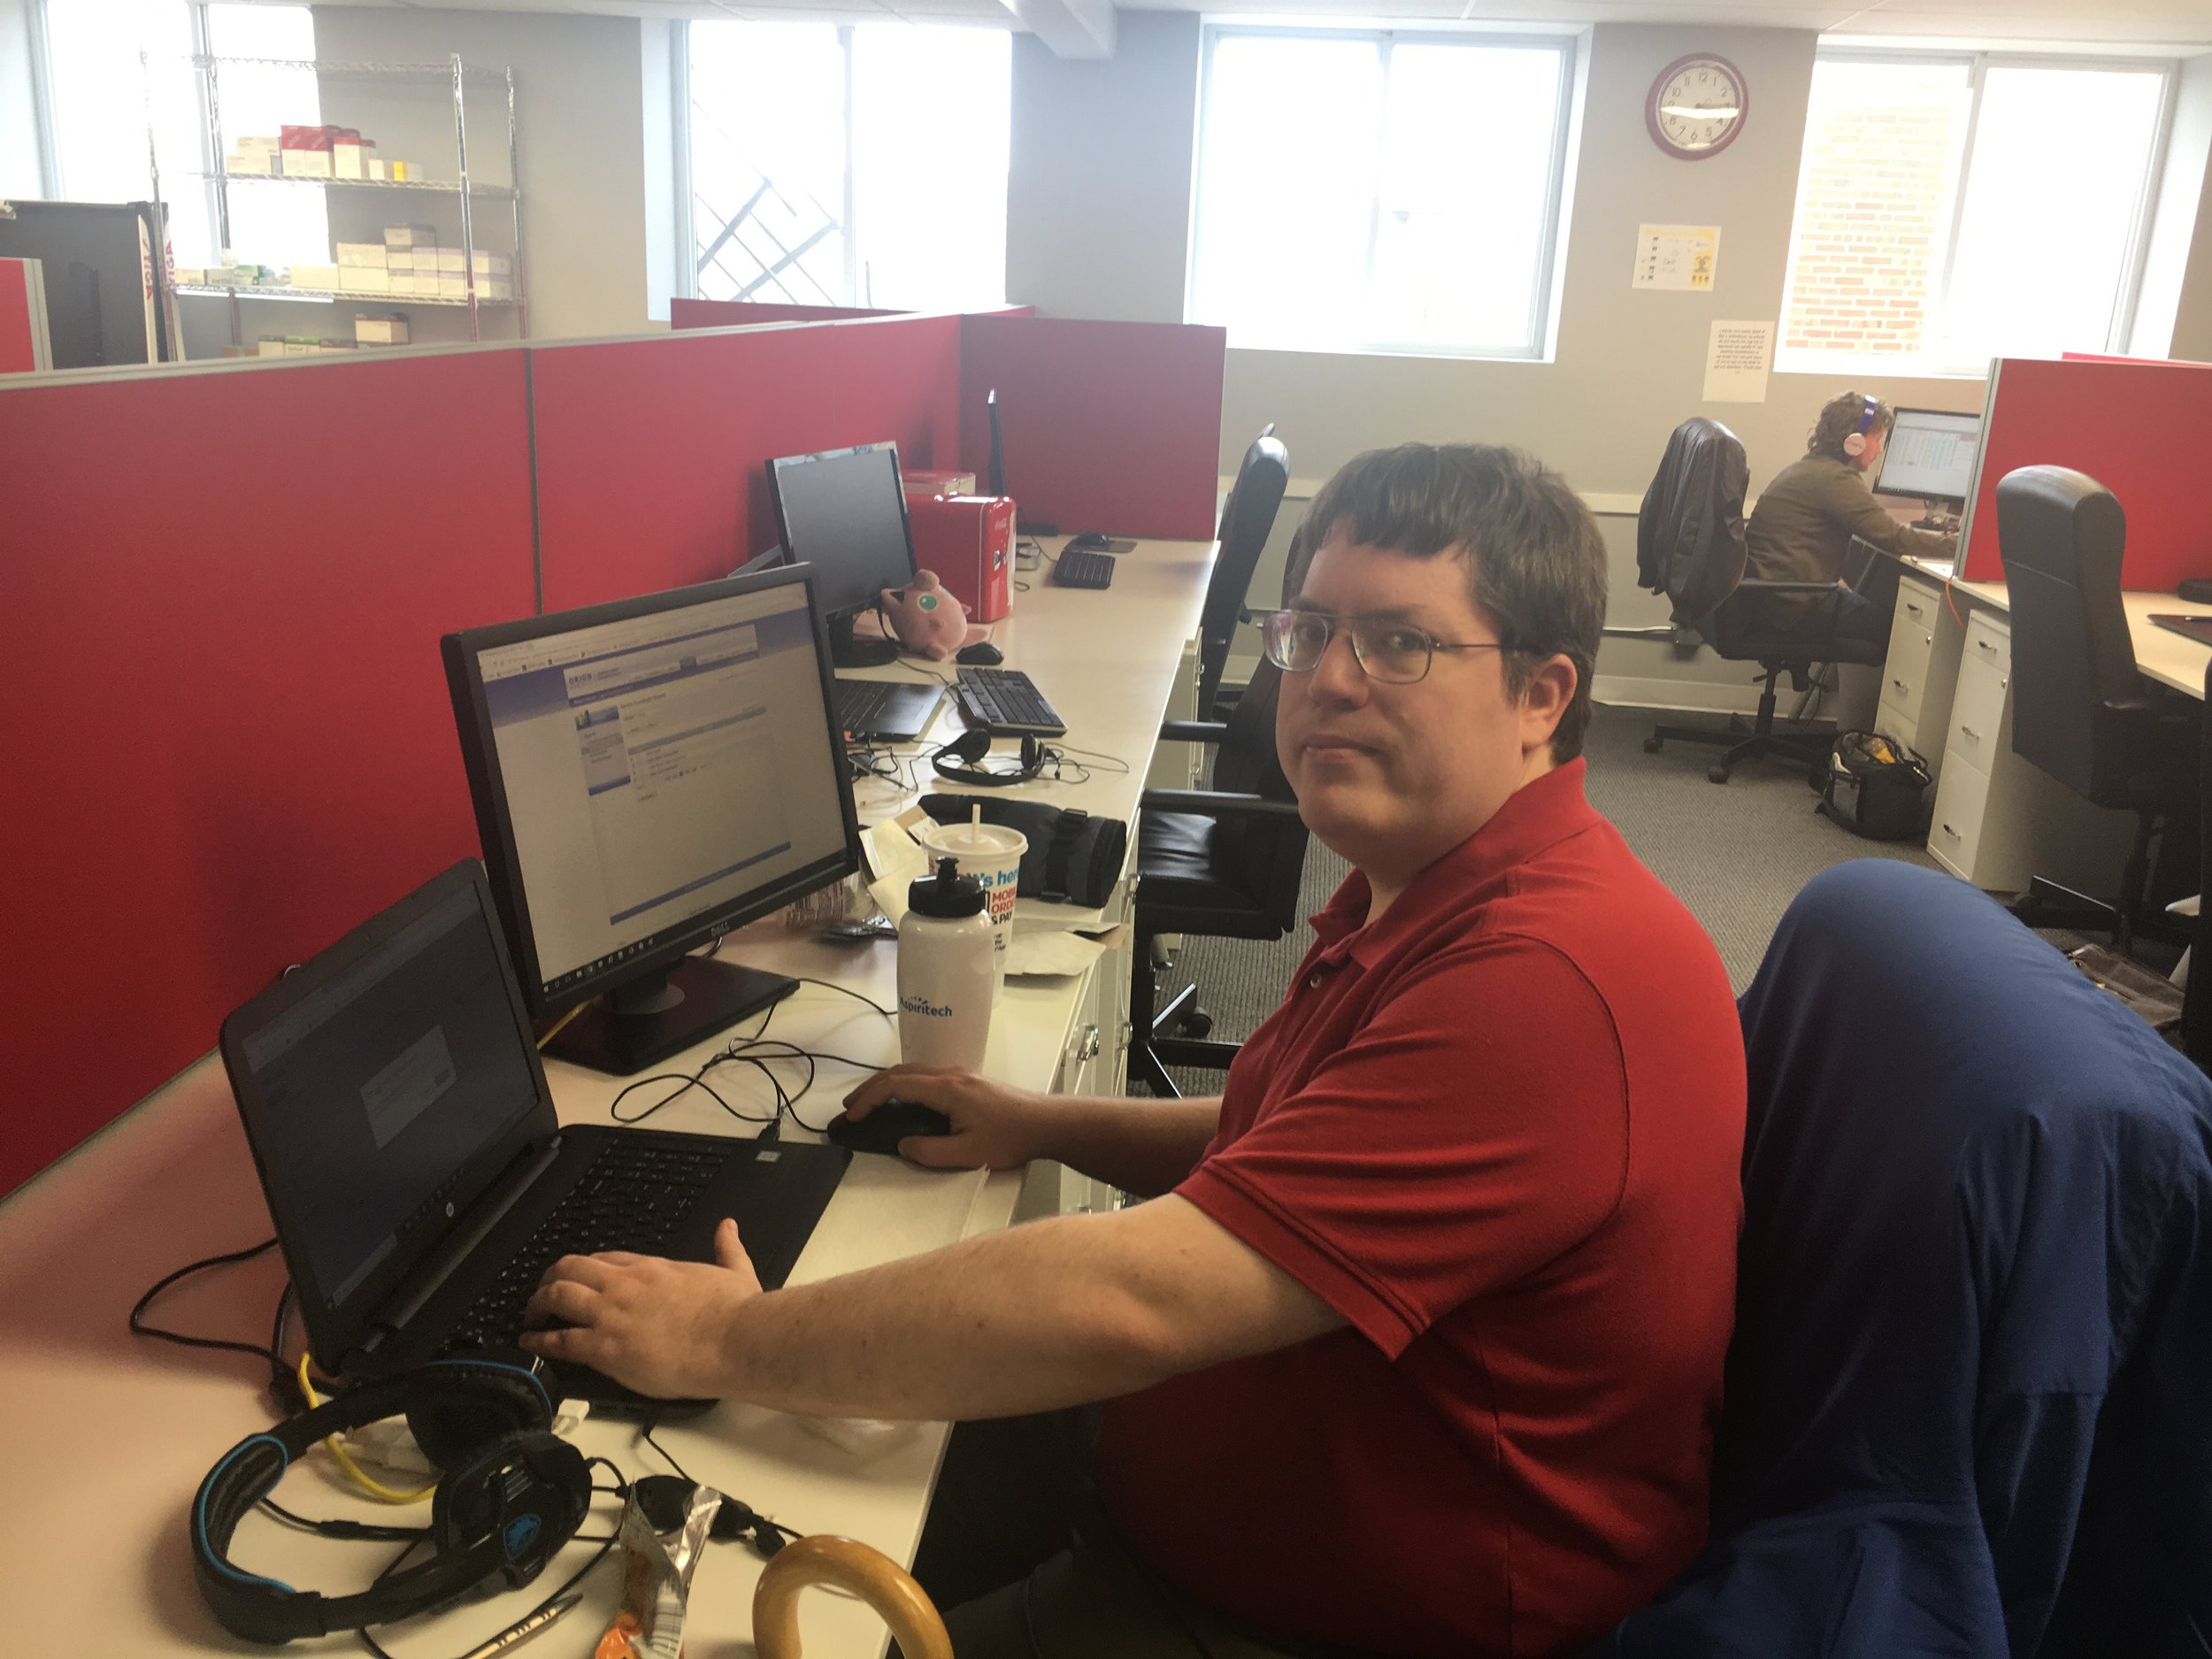 """""""I've been able to work on bad work habits I had at previous jobs. Now I am keeping better focus on the work, and arriving to work on time.""""  -Aaron, 37 years old, QA Analyst since 2017"""